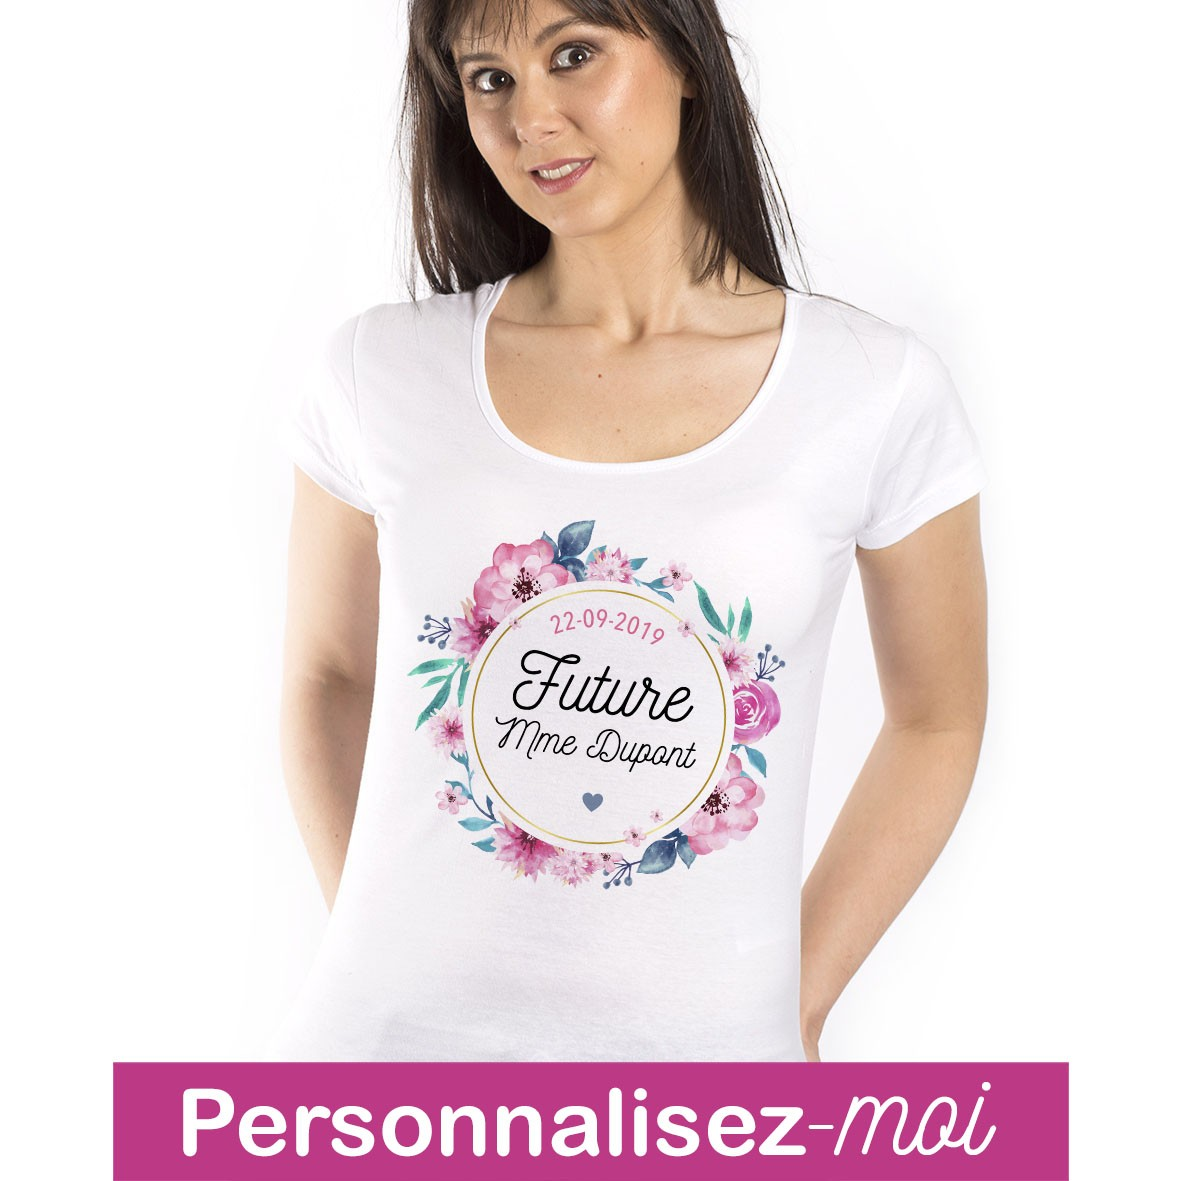 T Shirt Future Mme Personnalisable Mayooo T Shirts Et Accesoires Cool Pour Gens Cool